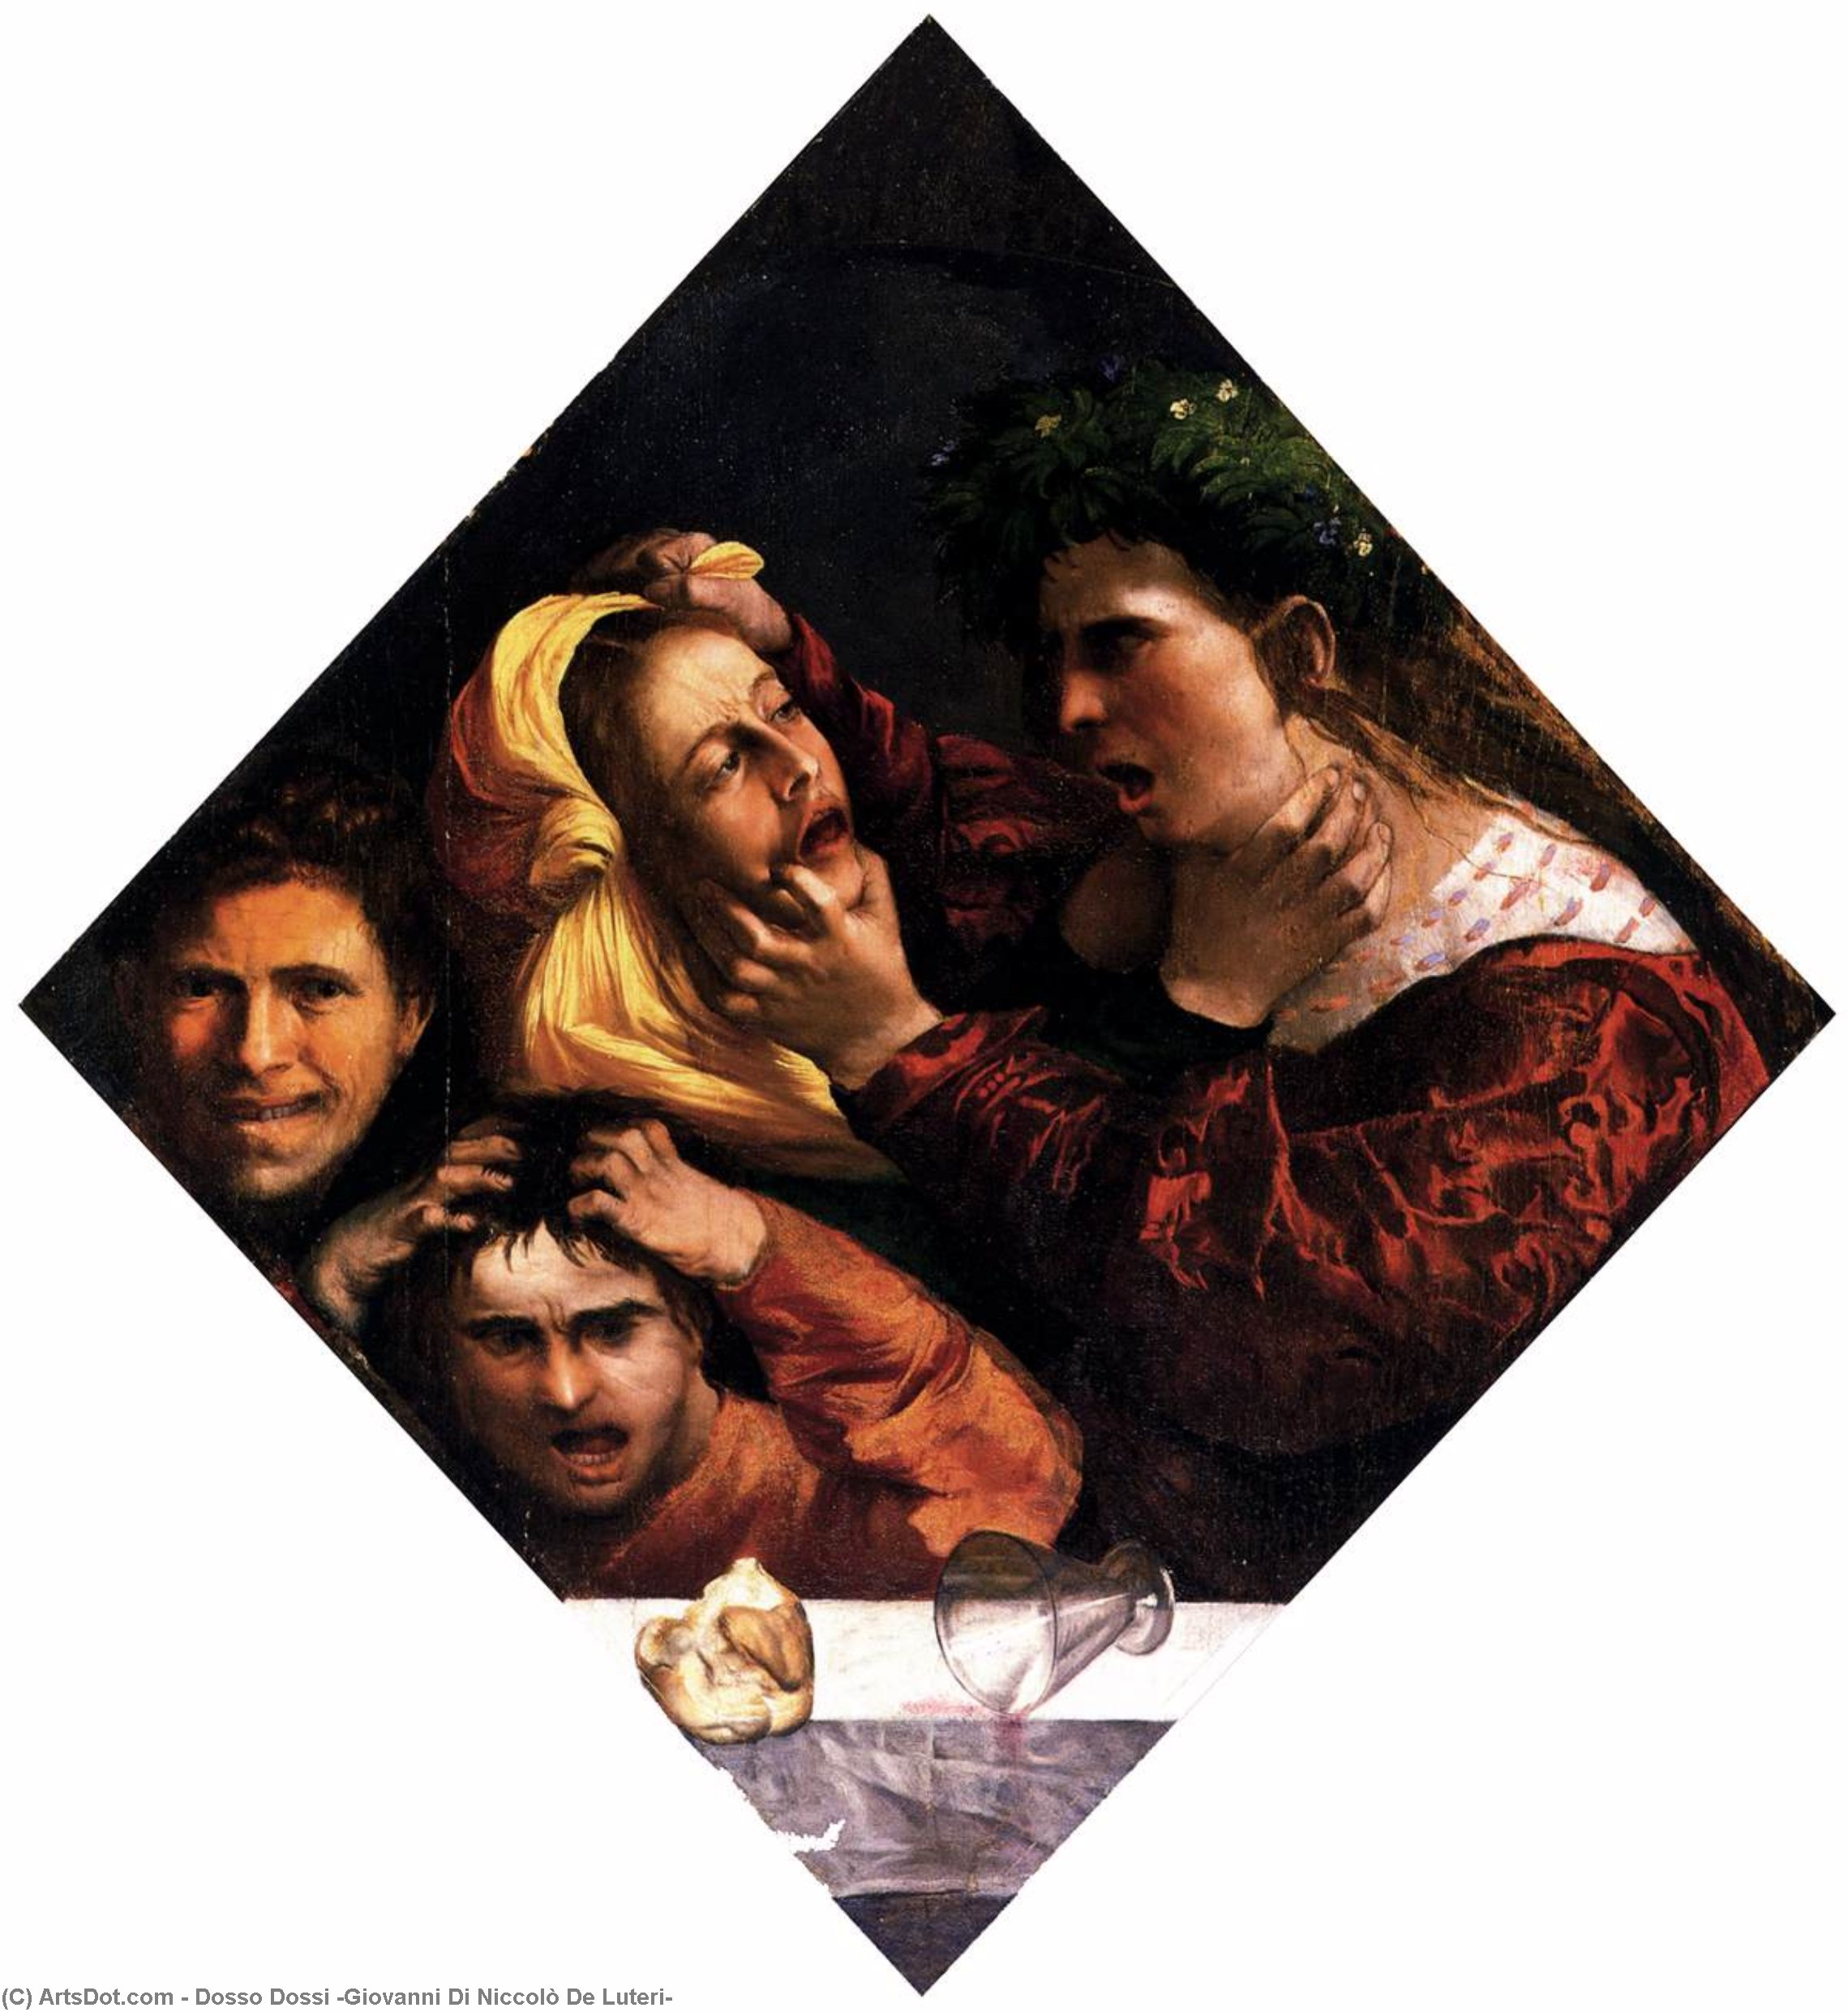 Anger or the Tussle, Drawing by Dosso Dossi  (order Fine Art hand made painting Dosso Dossi (Giovanni Di Niccolò De Luteri))